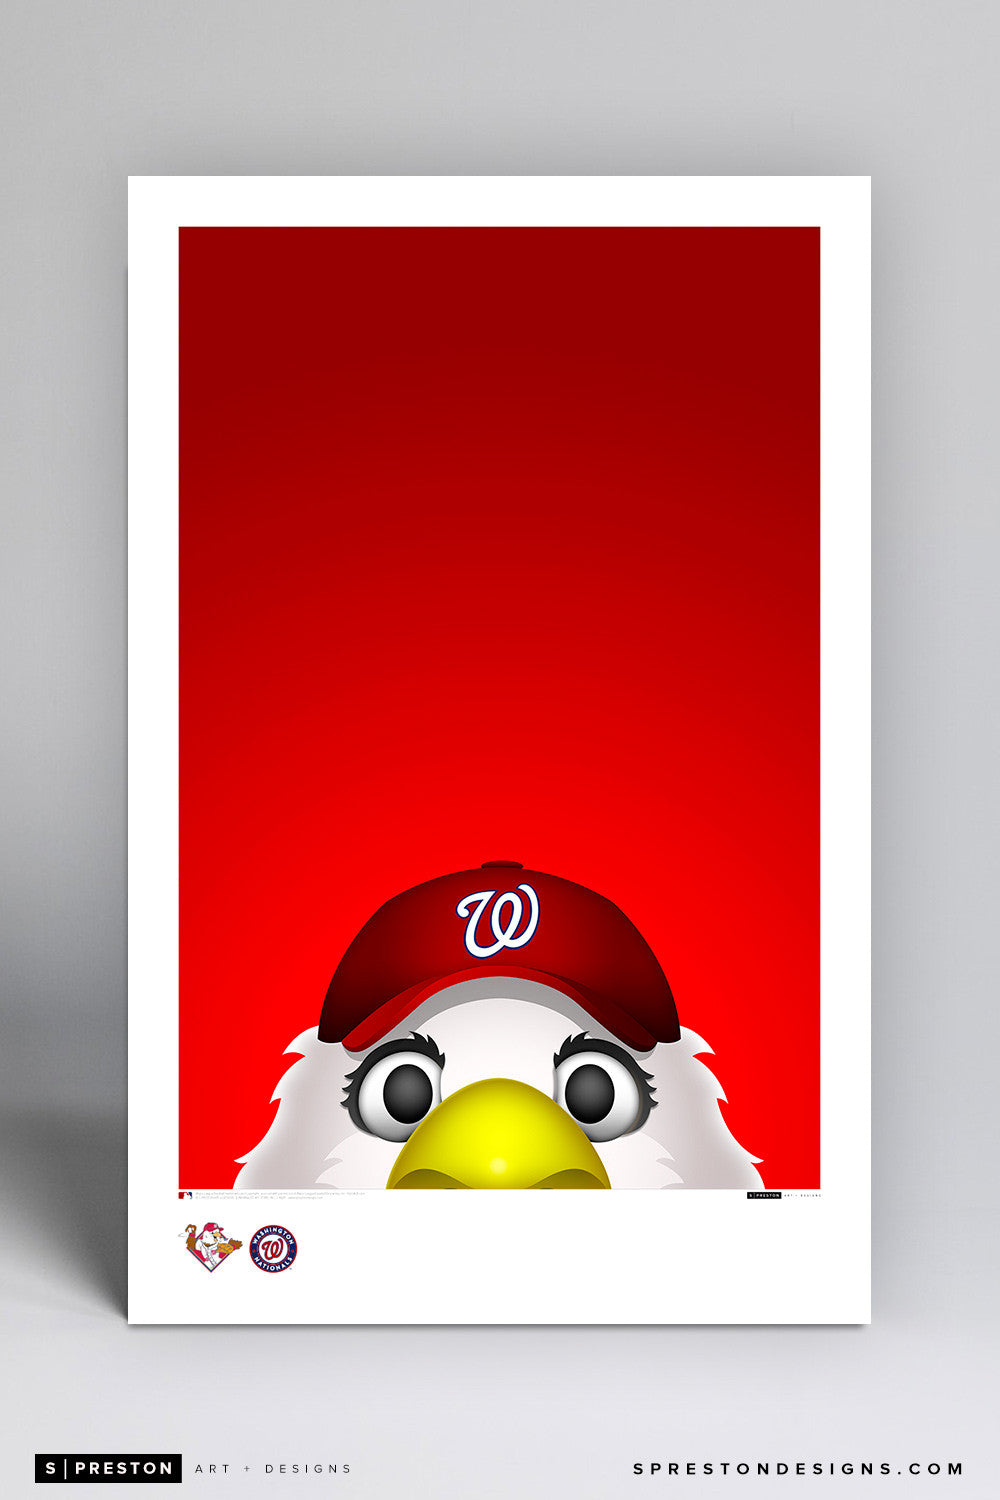 Minimalist Screech Art Poster Art Poster - Washington Nationals - S. Preston Art + Designs